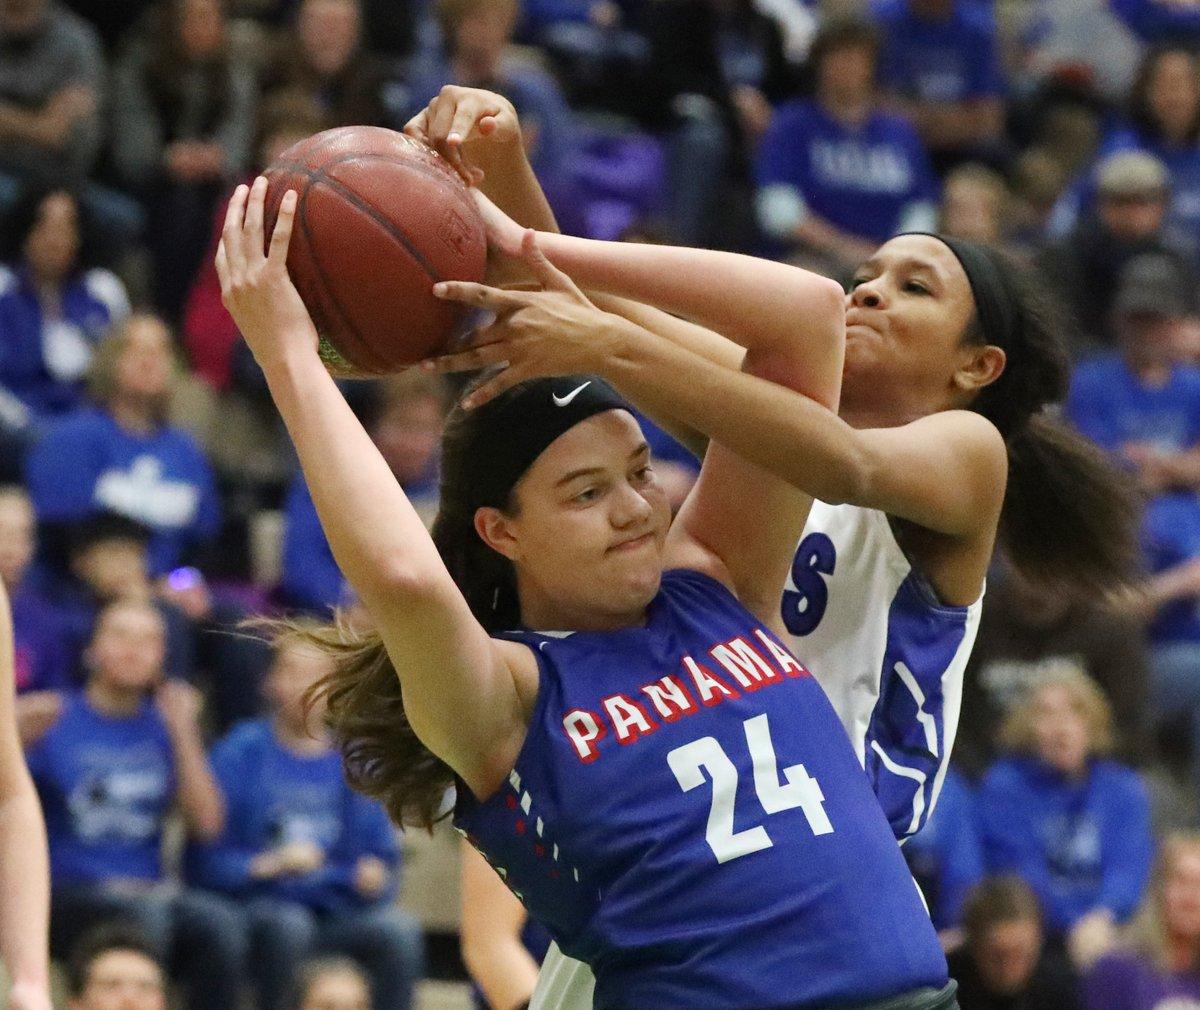 Nicole Johnson of Panama was a huge presence under the basket in the Panthers' semifinal win on Saturday. (Photo by James P. McCoy / Buffalo News).